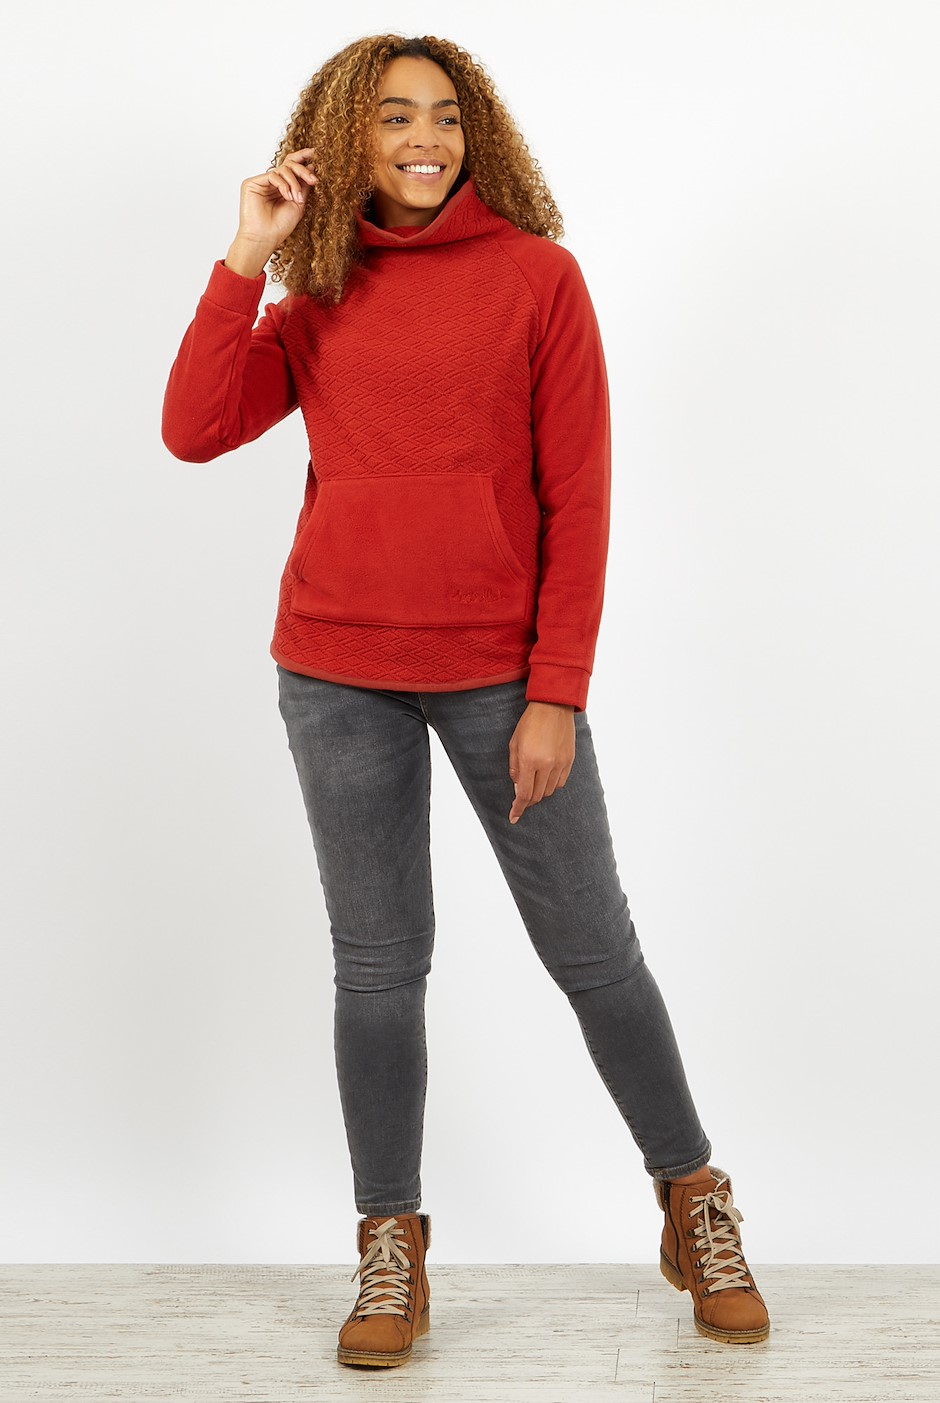 Sallca Pop over Diamond Microfleece Chilli Red